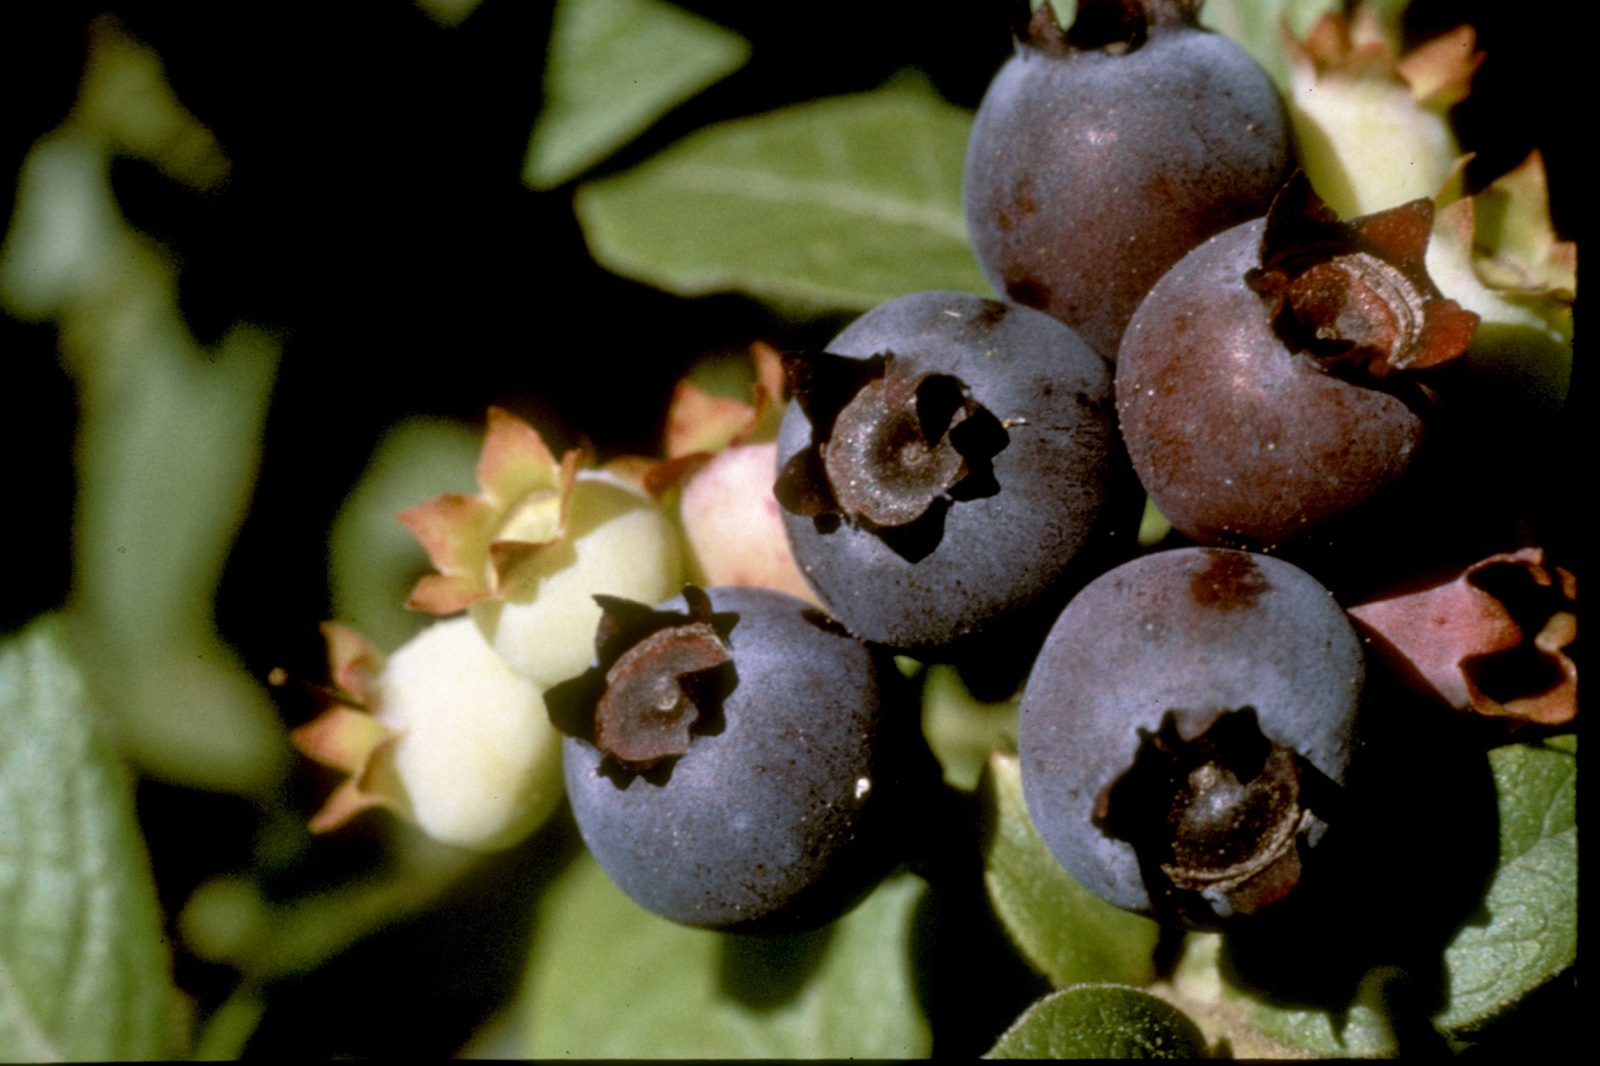 Close-up of wild blueberries growing on the banks of the Gamble River.